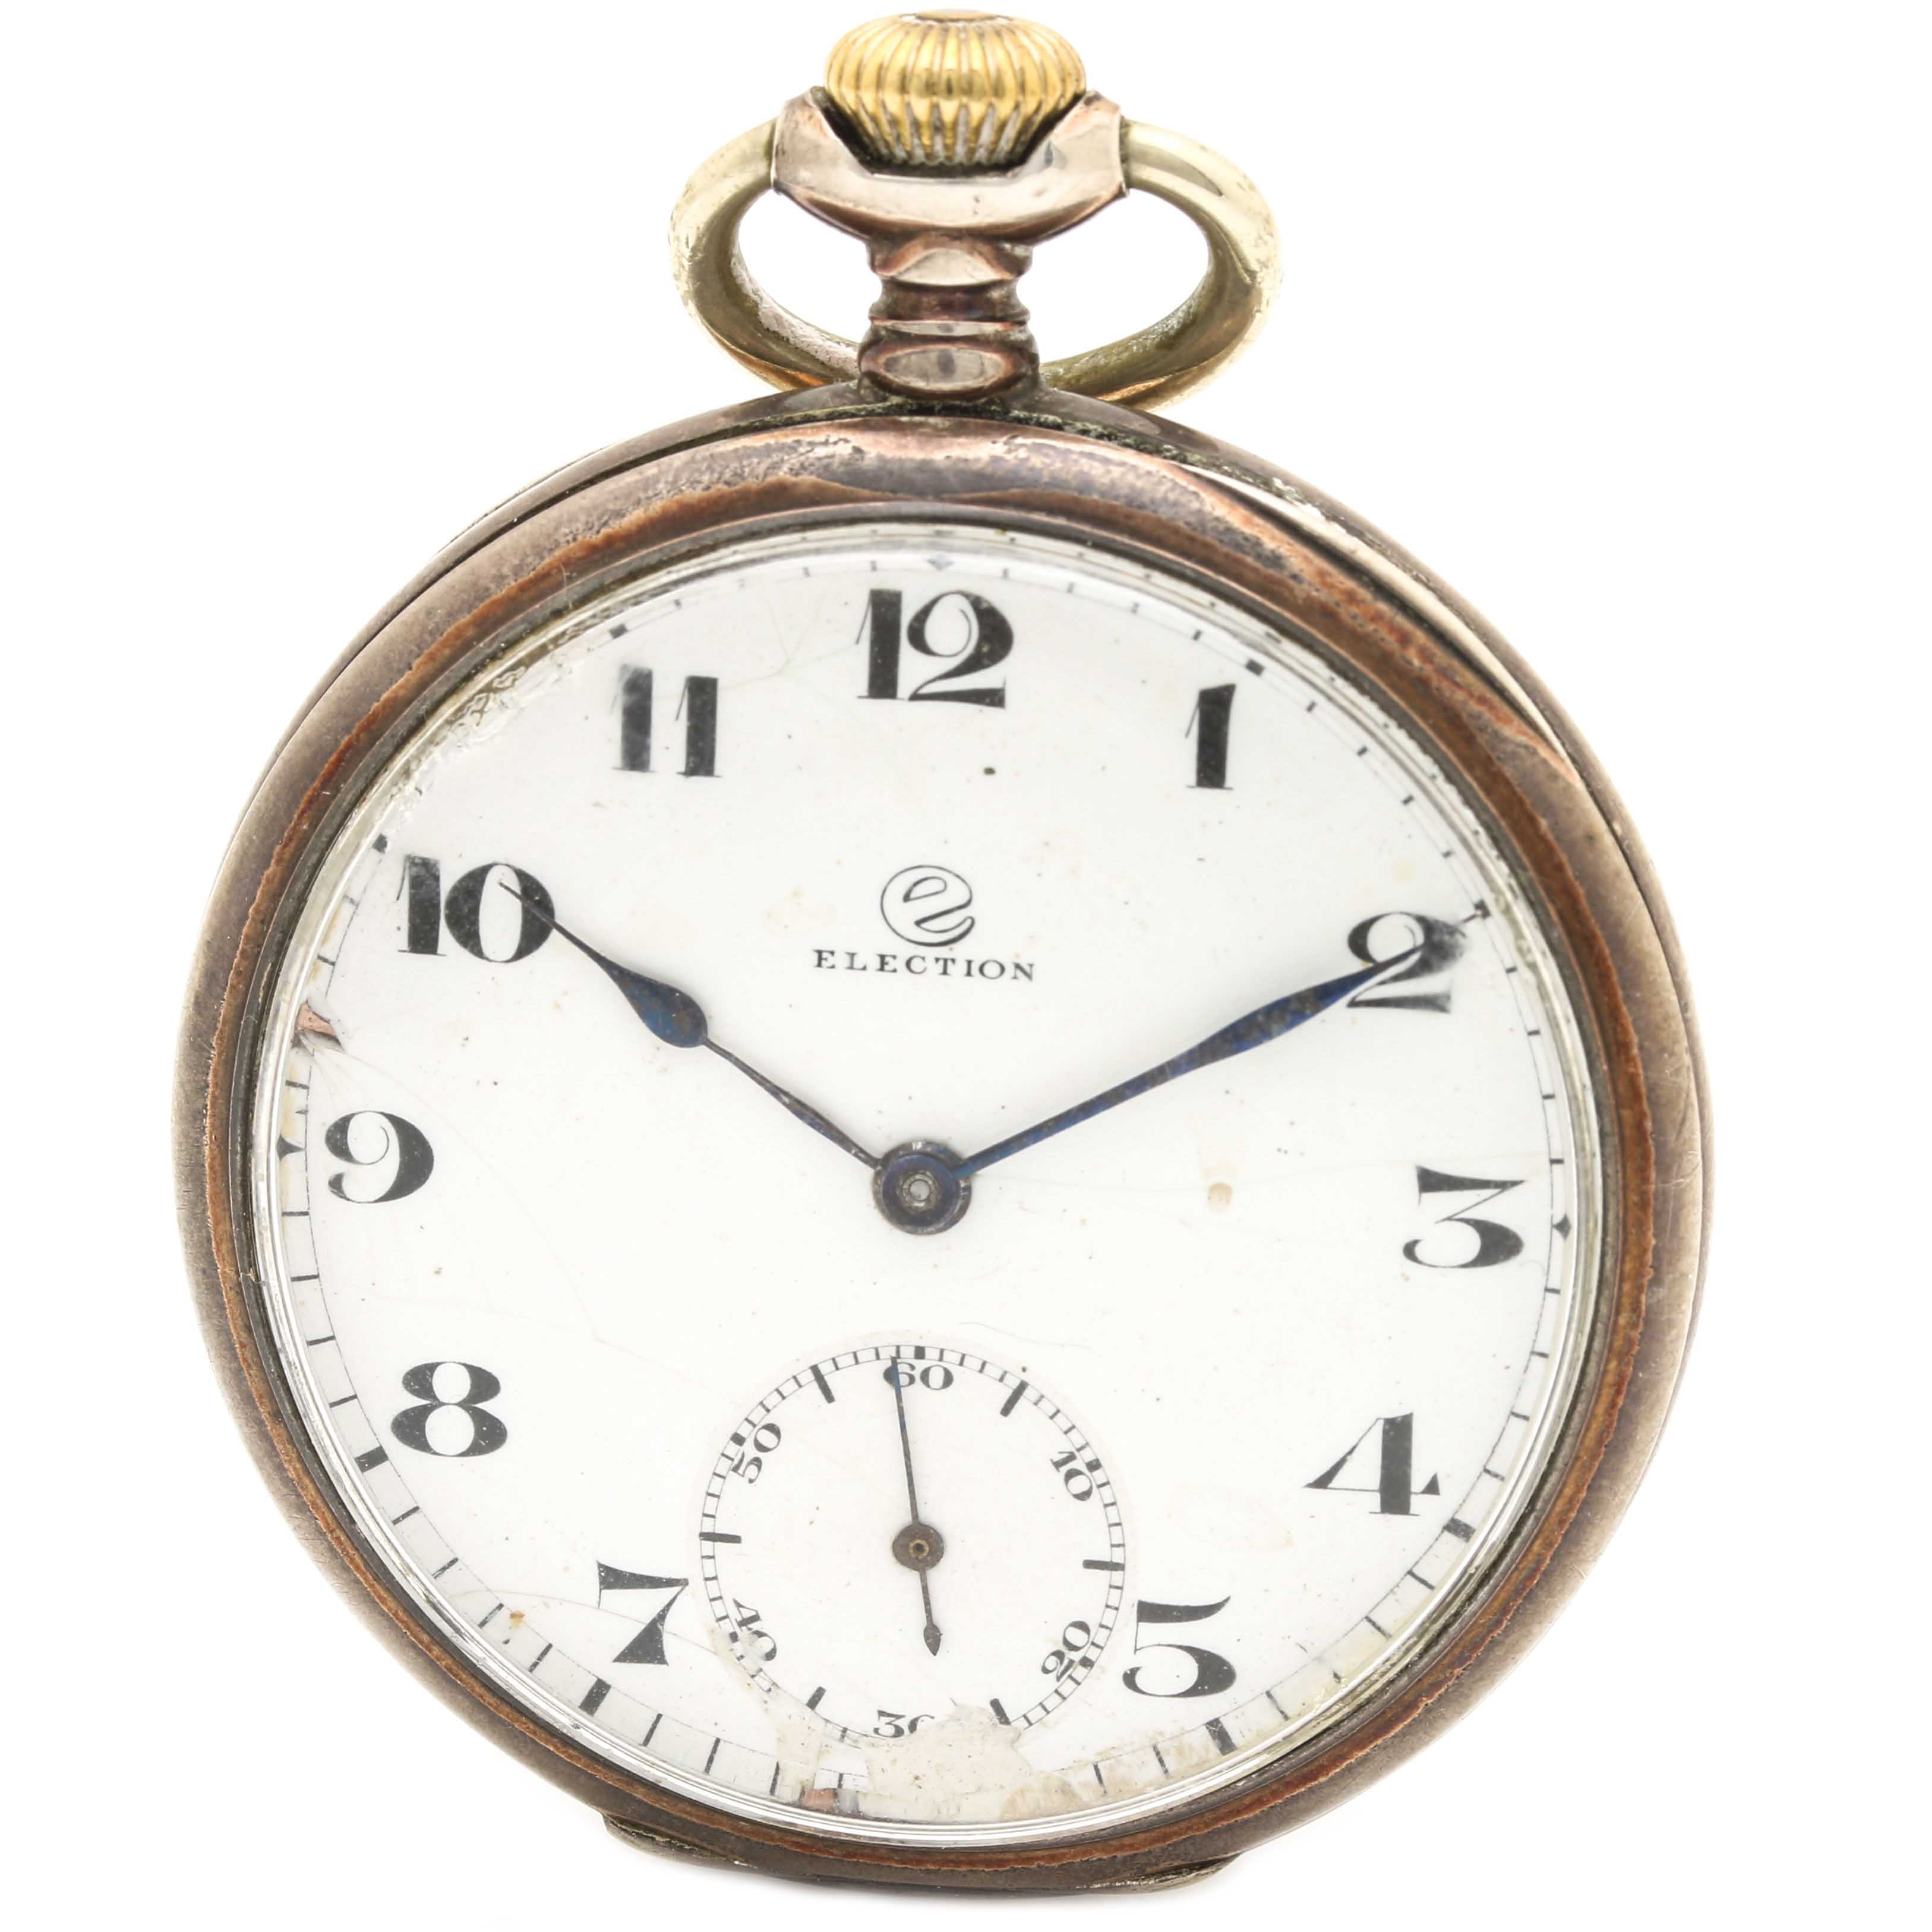 Election 800 Silver Pocket Watch